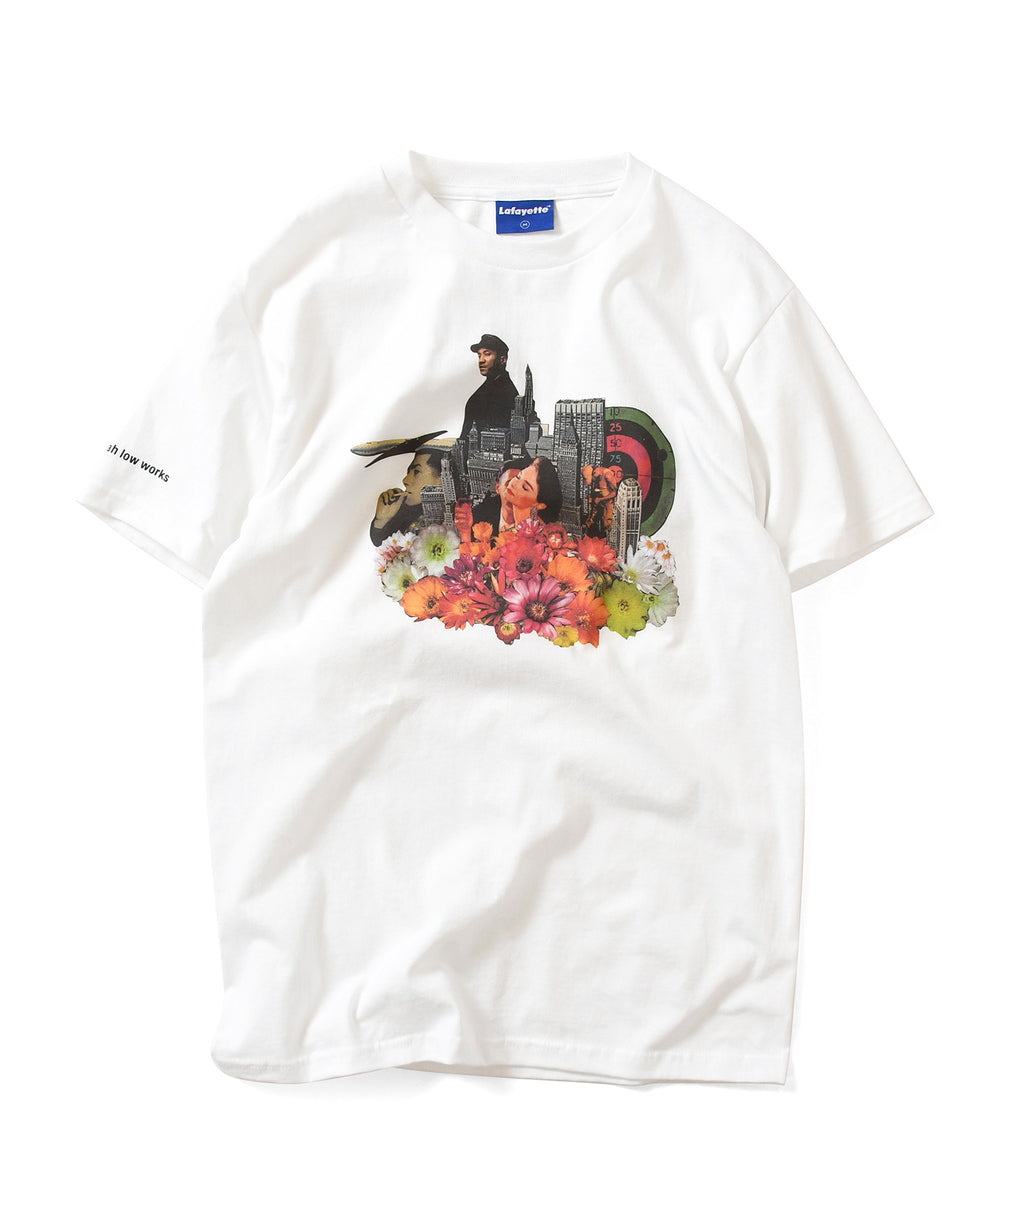 Lafayette × KILLIMAN JAH LOW WORKS KEEPING IT MOVING TEE LS200116 WHITE